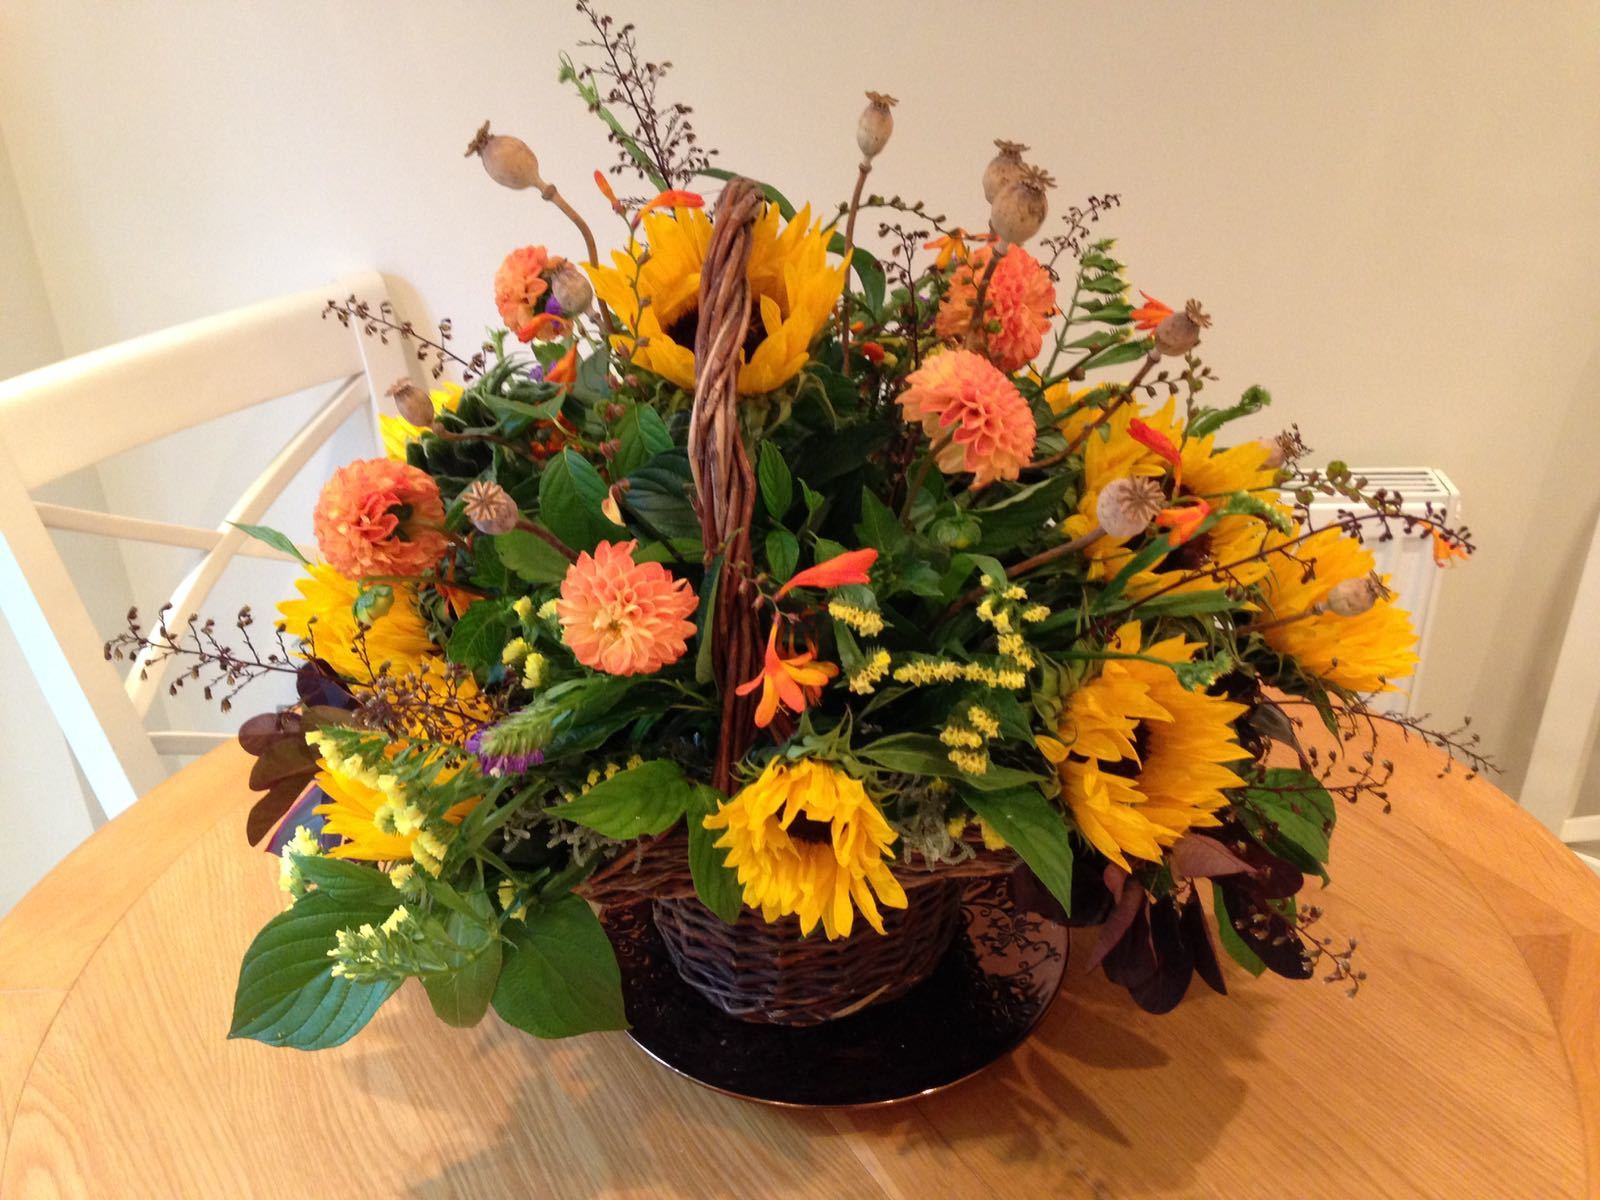 DISPLAY BASKET A wicker basket filled with your choice of flowers